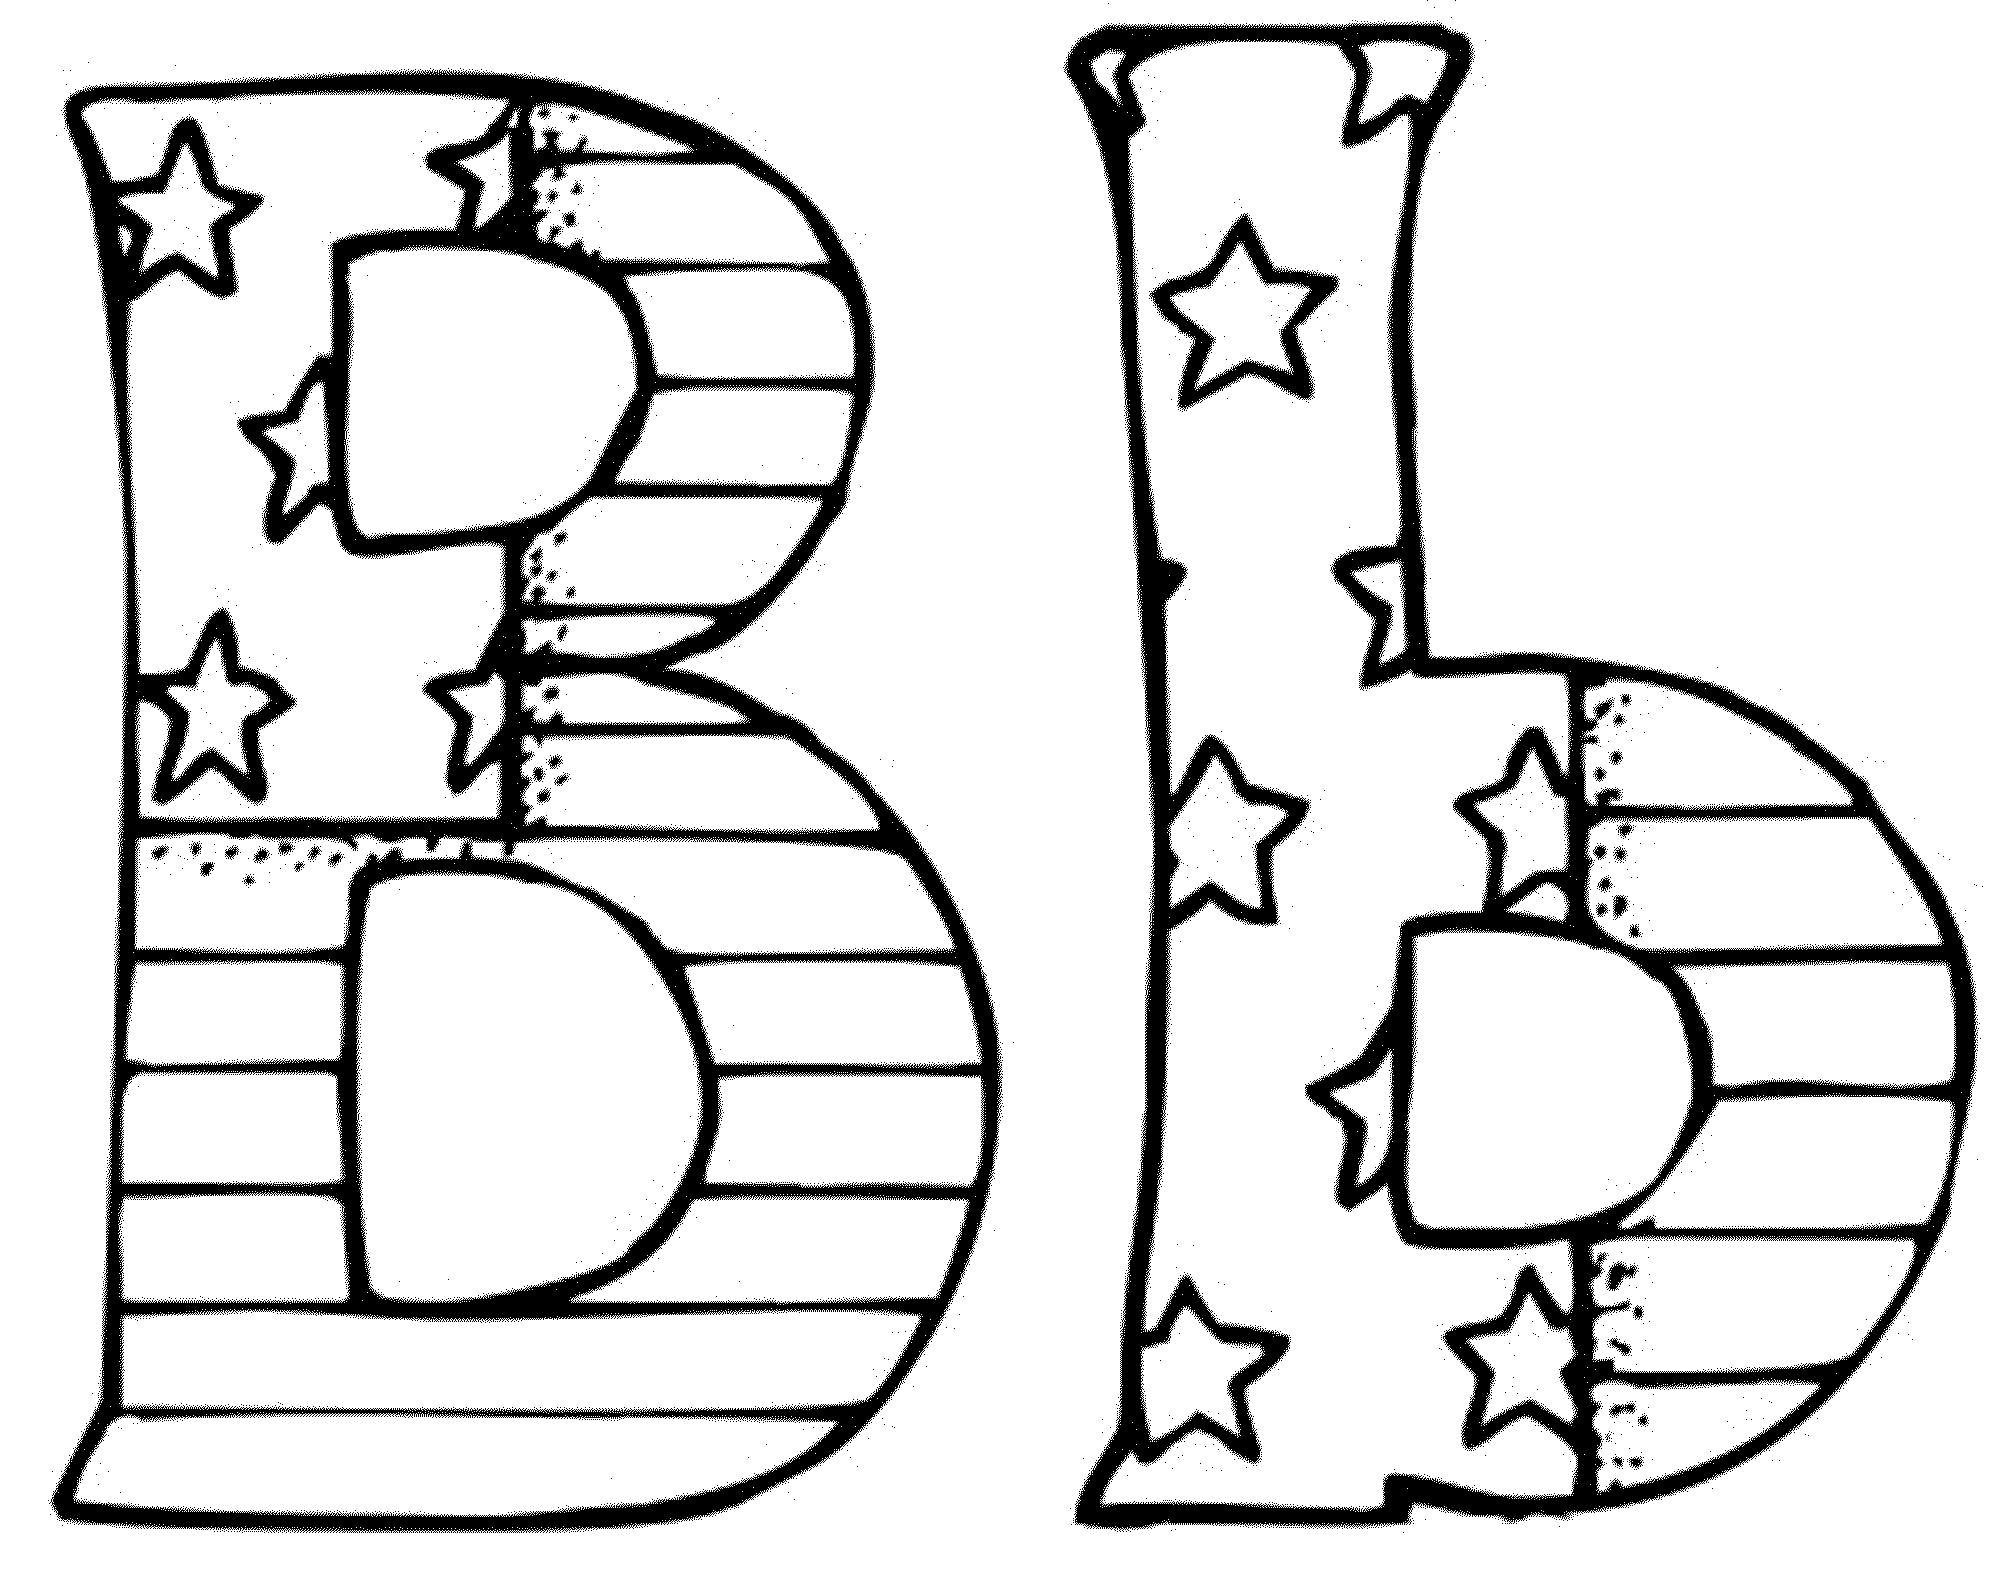 2000x1573 Unique Letter B Coloring Pages Collection Printable Coloring Sheet